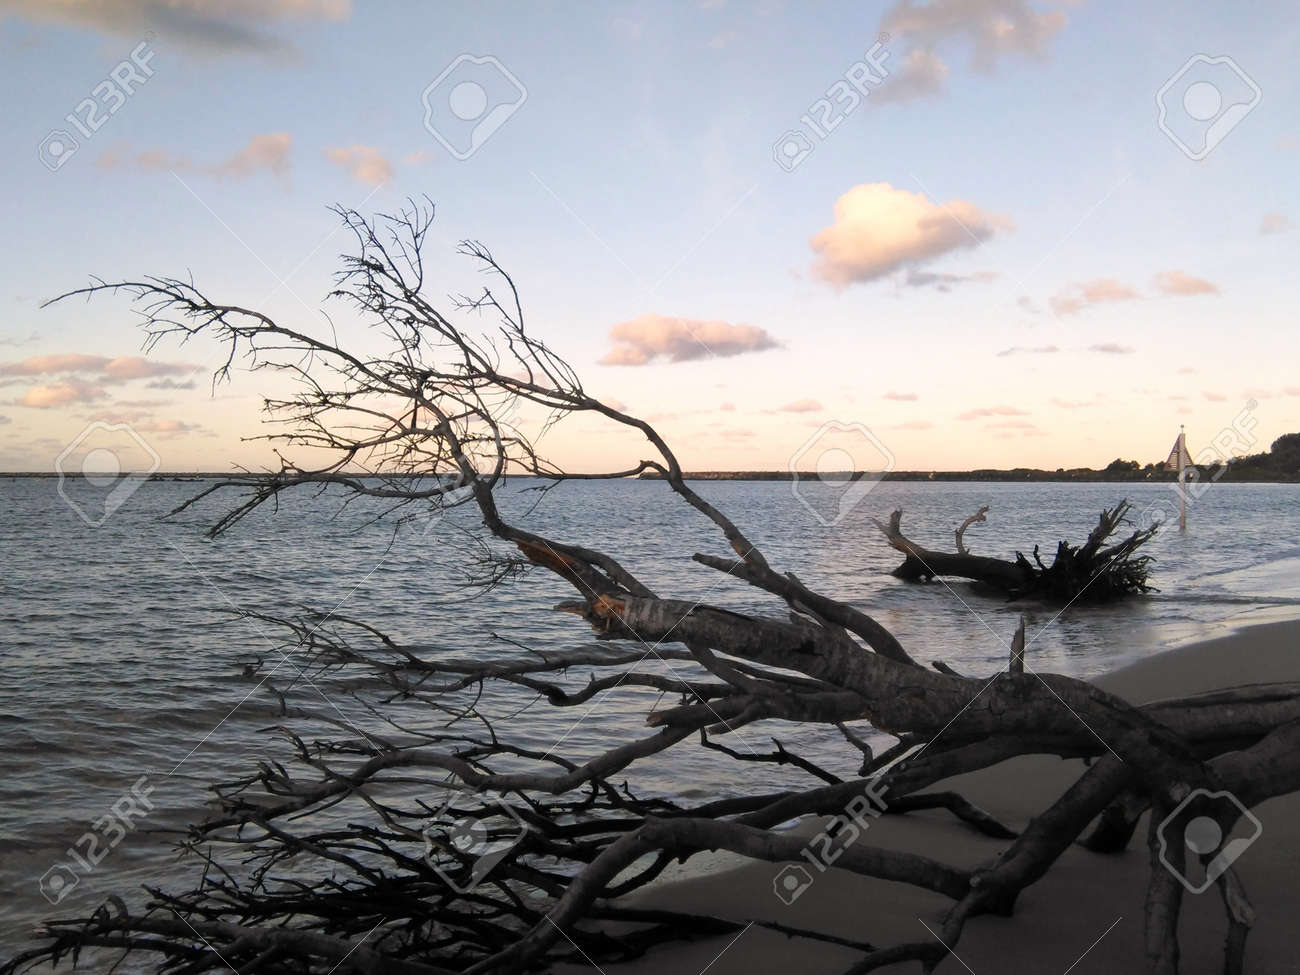 The dark branches and trunk of a fallen tree are seen against the colours of a cloudy sky at sunset. Another tree trunk has been washed onto the beach. A tree-covered headland is the distance. - 171098743